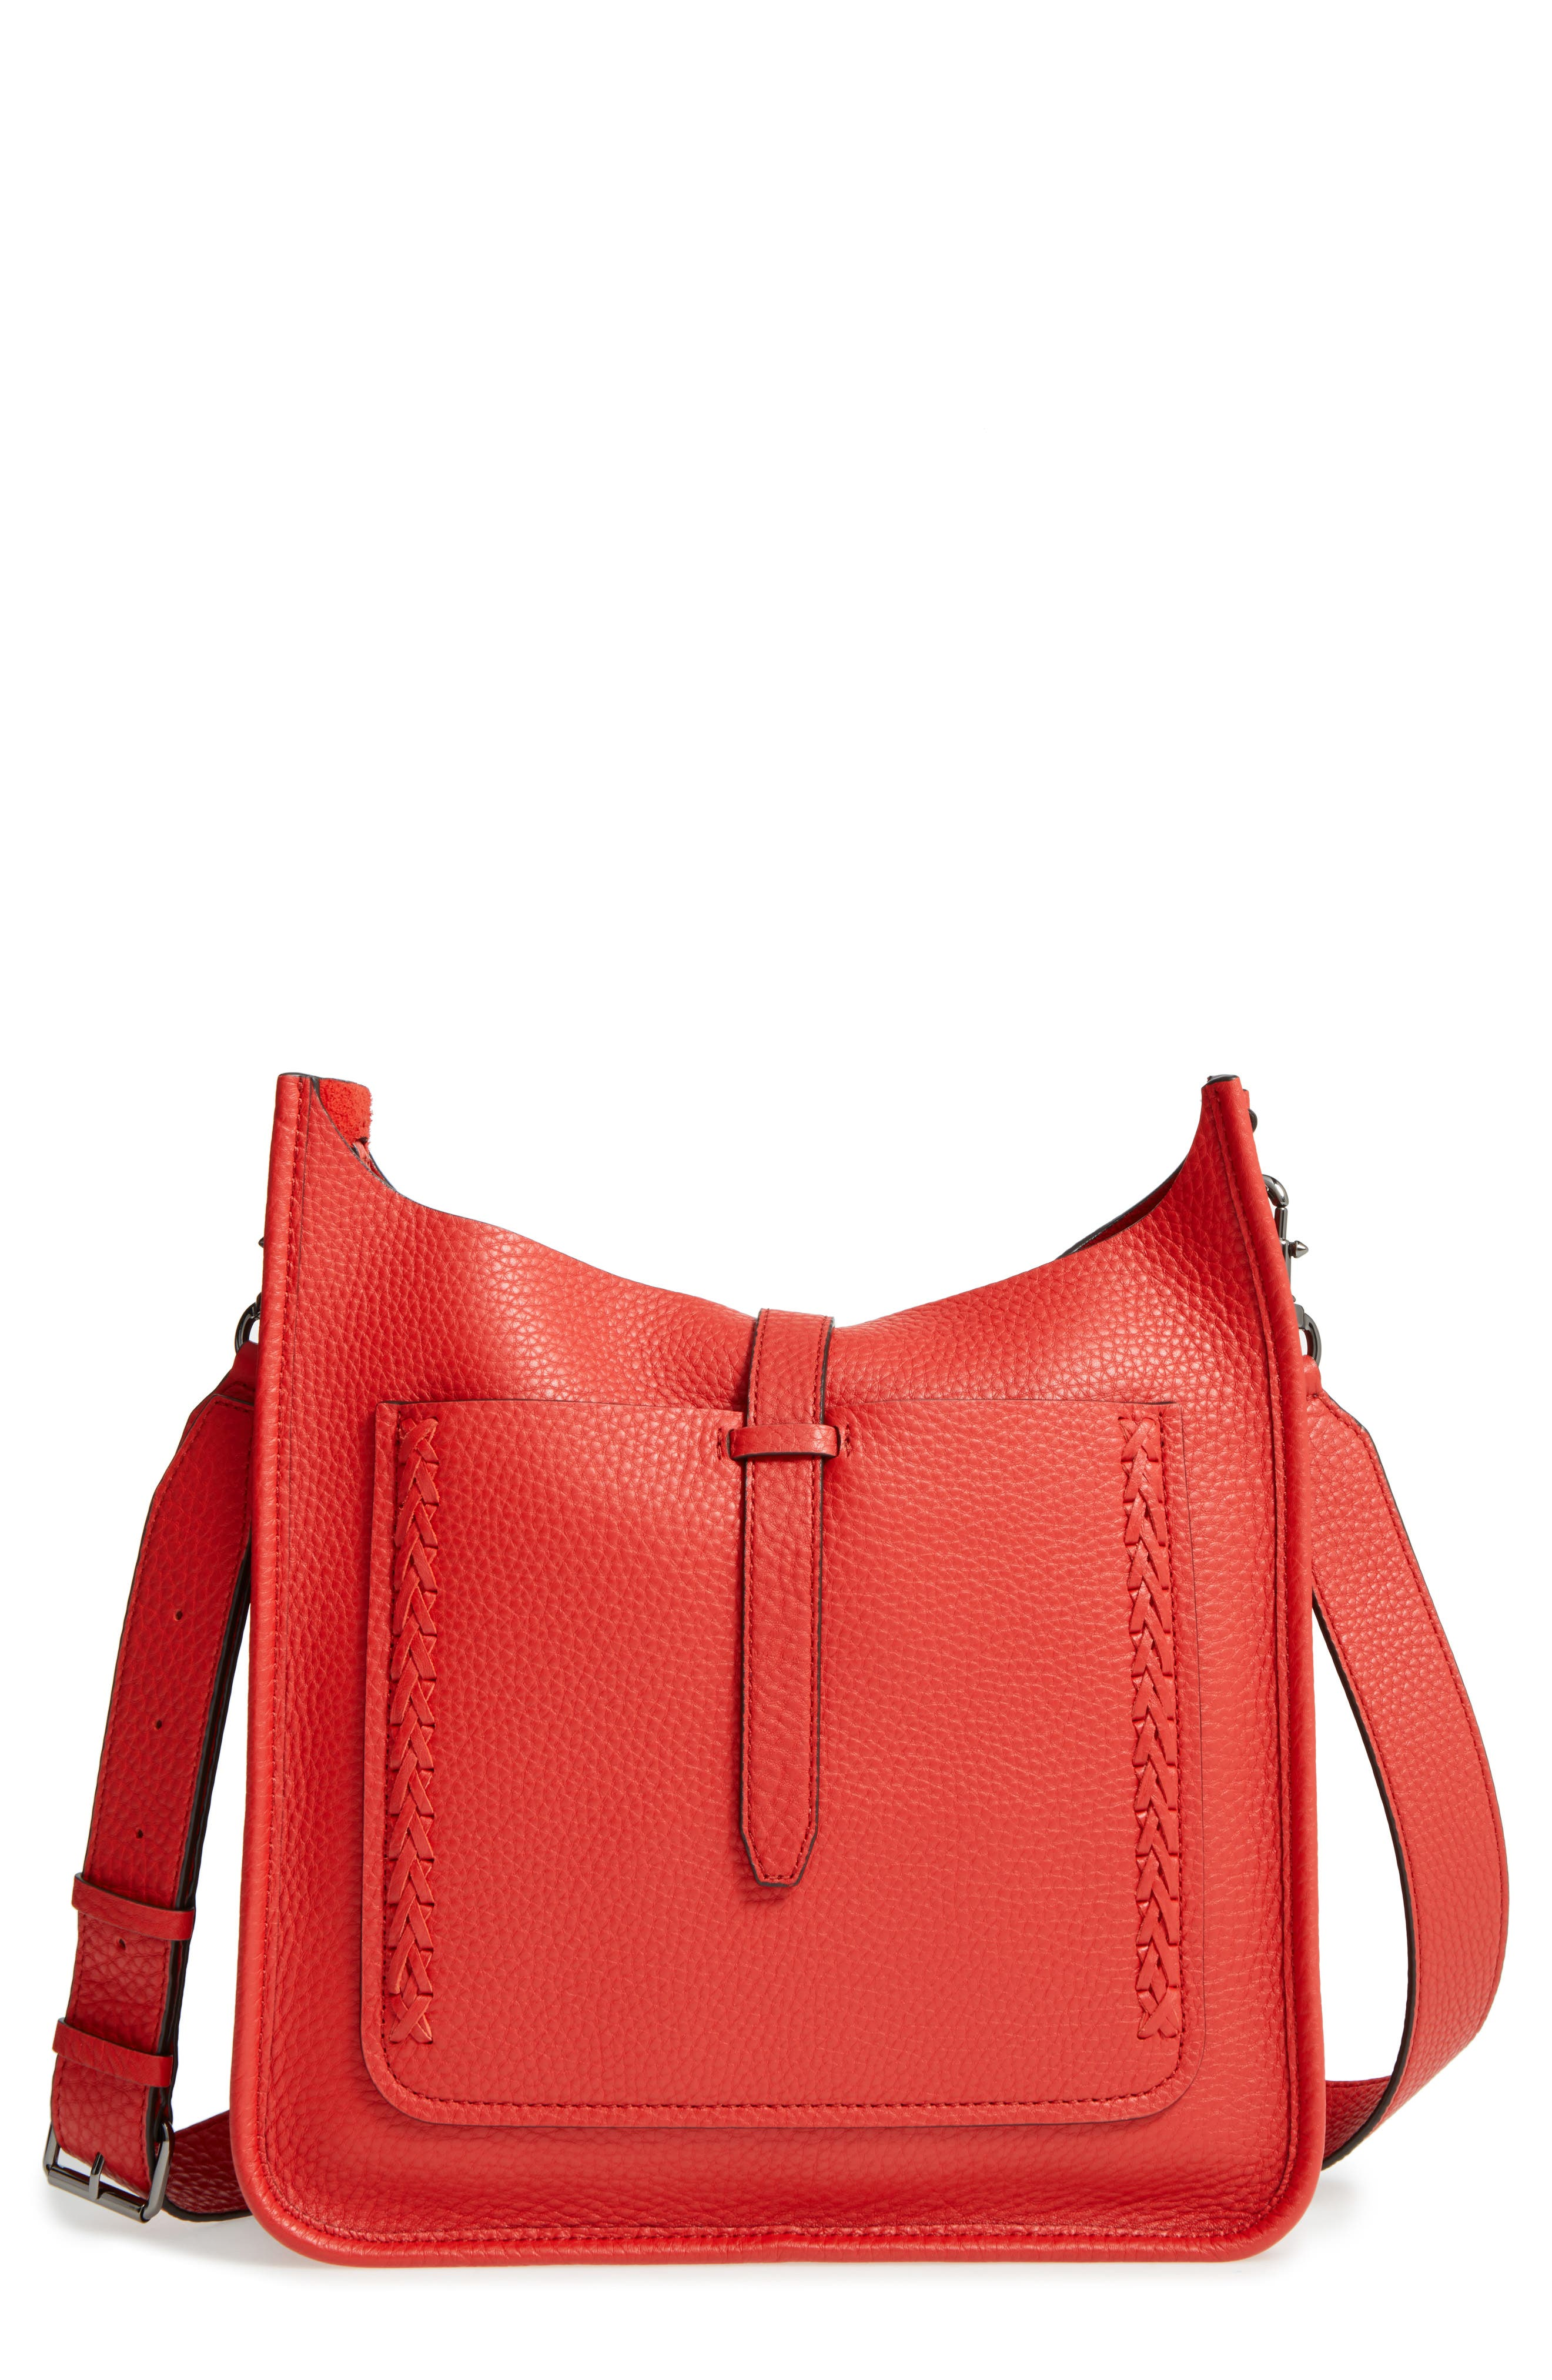 Alternate Image 1 Selected - Rebecca Minkoff Unlined Whipstitch Feed Bag